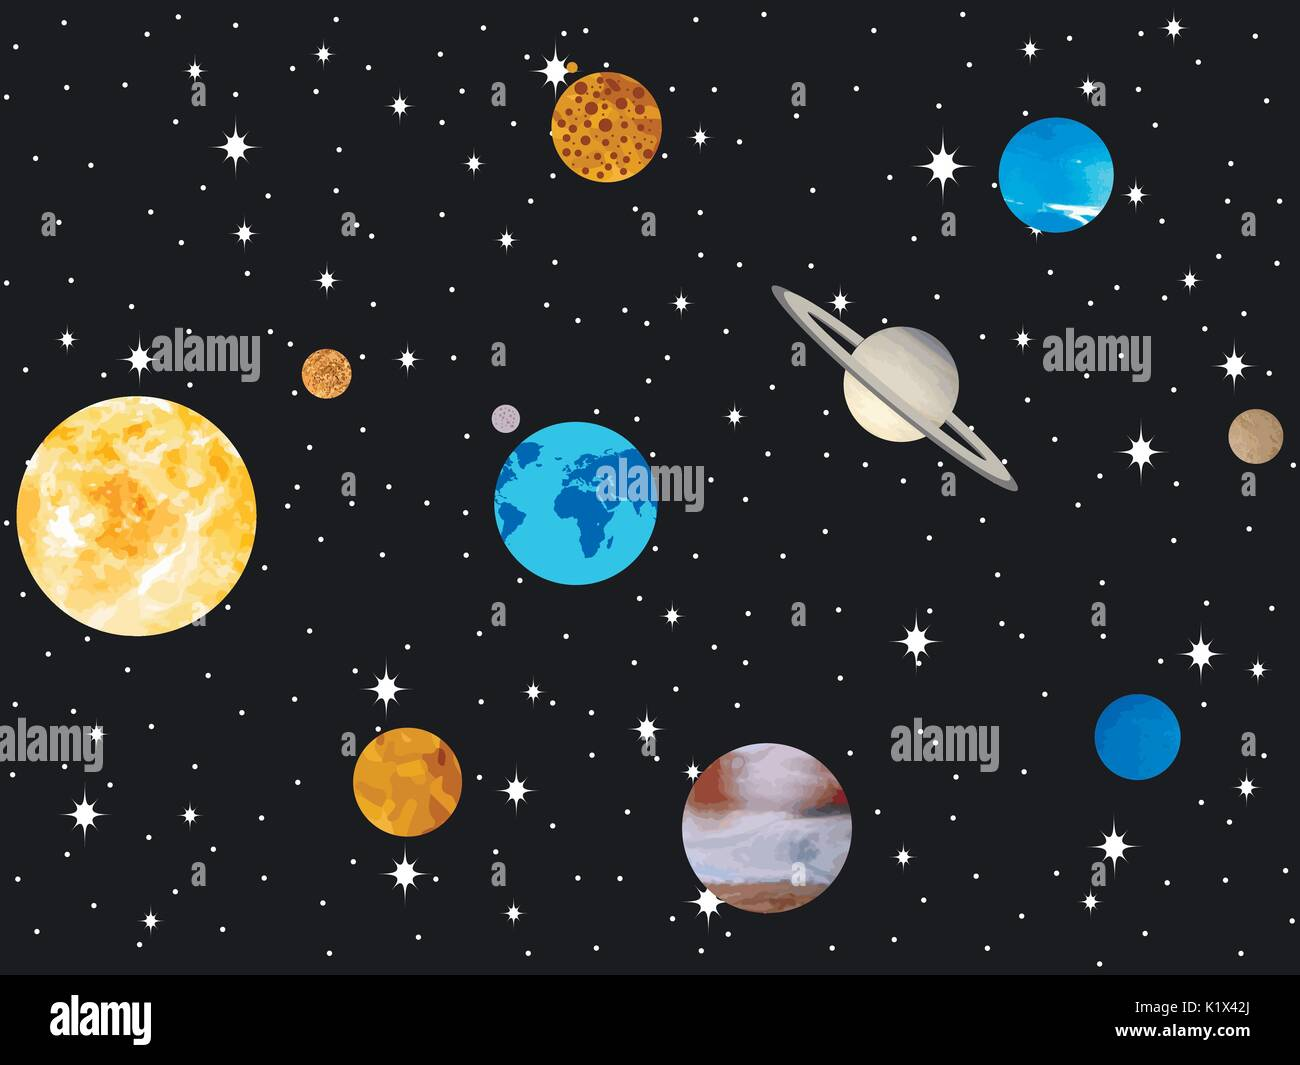 what are the 8 planets from outer space real - photo #21